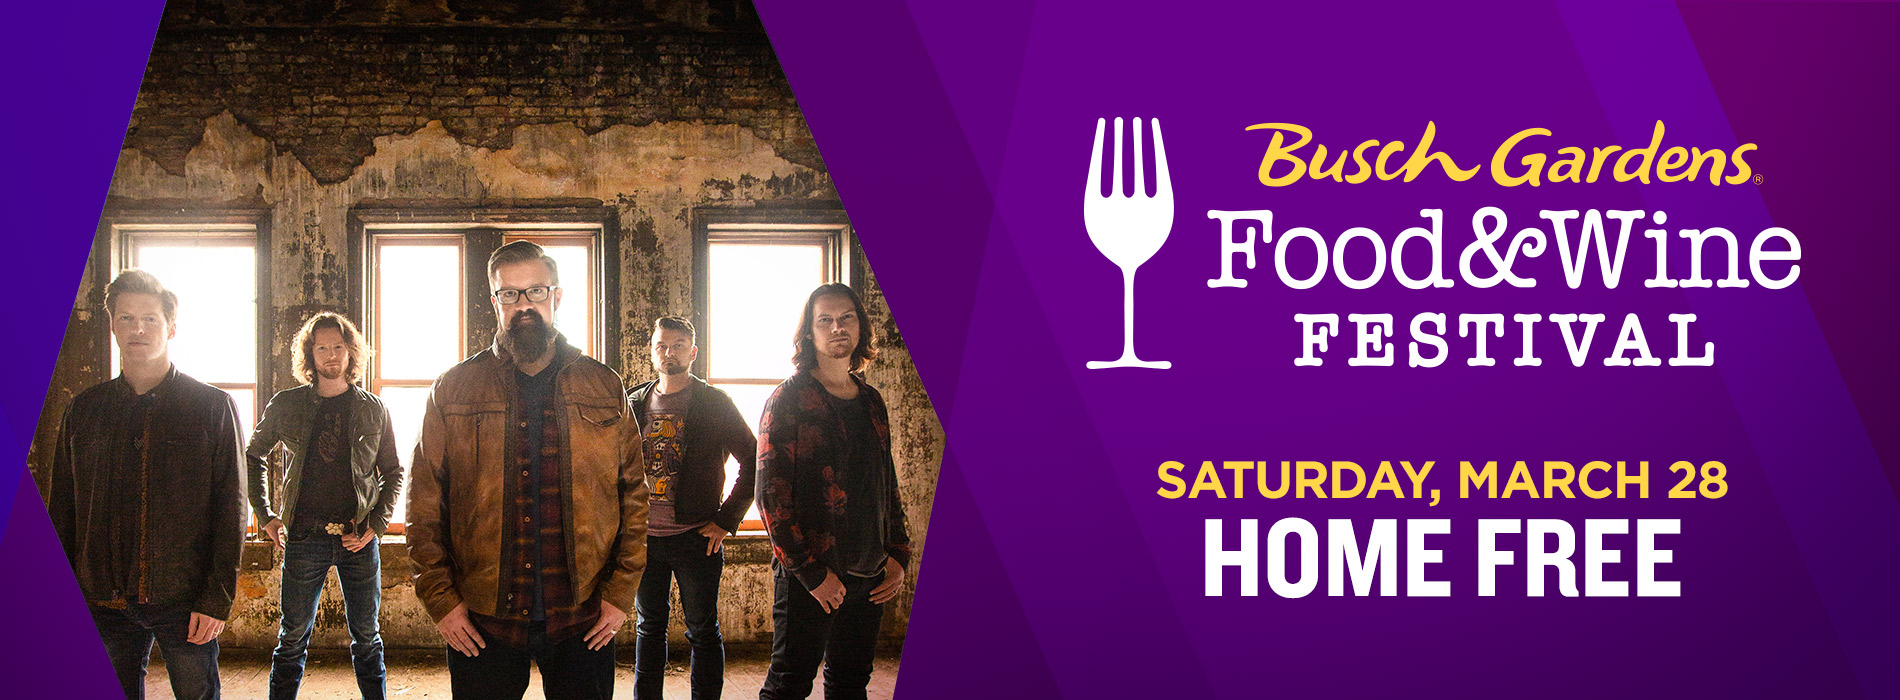 Home Free at Busch Gardens Tampa Bay on Saturday, March 28 for the Food and Wine Festival